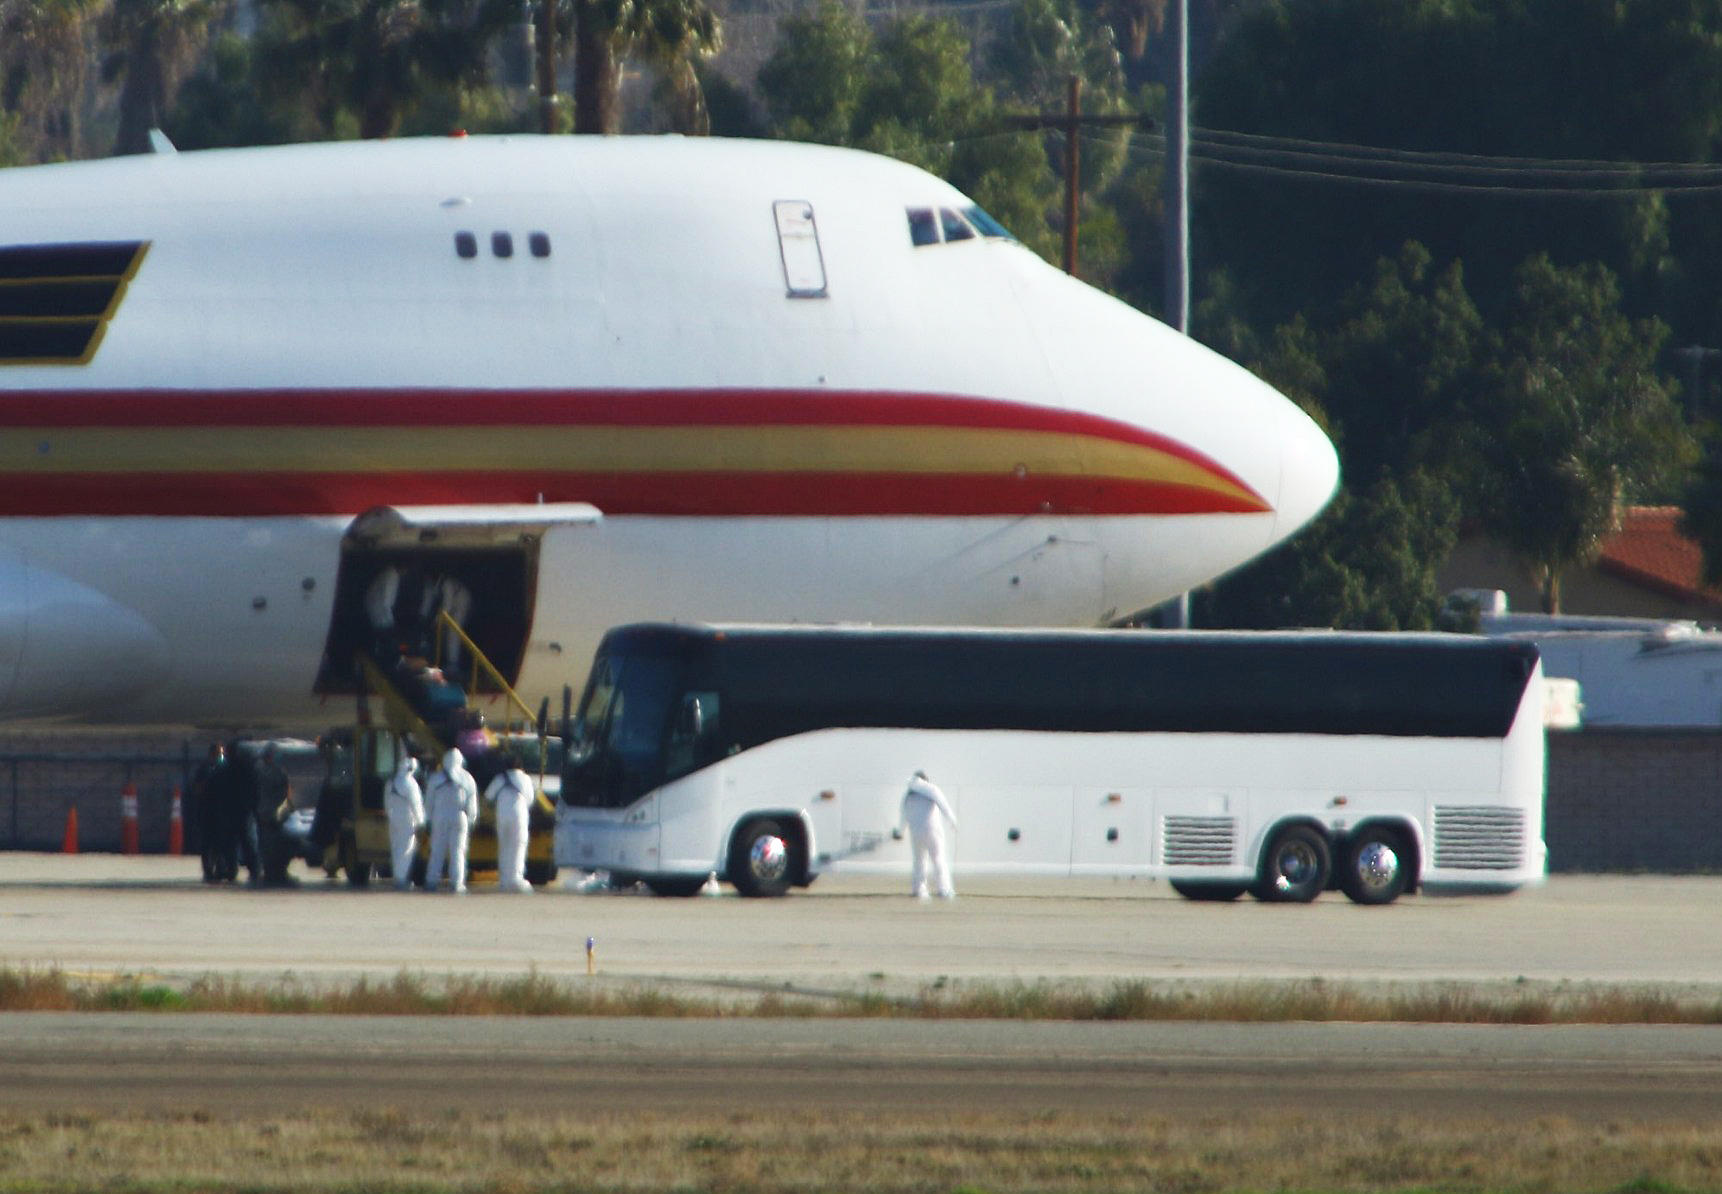 A plane carrying evacuees from Wuhan, landing at March Air Reserve Base in California on January 29, 2020.